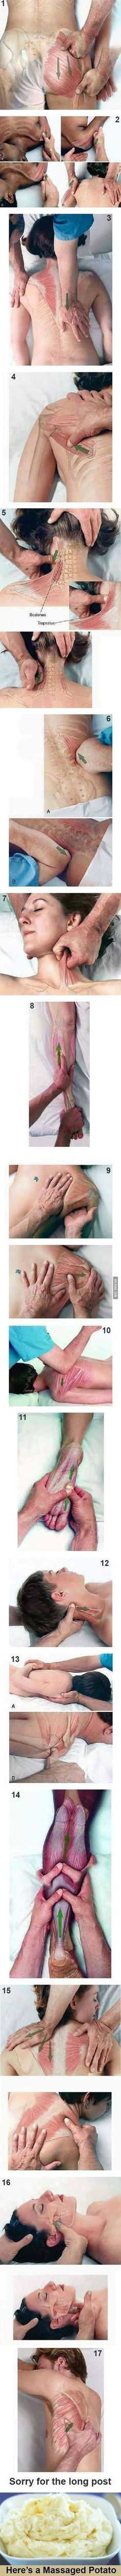 This is a post for a massage tutorial. Every point that is shown, every placement of their hand is EVERY point of fibromyalgia chronic pain. Massage doesn't work for me because of this.